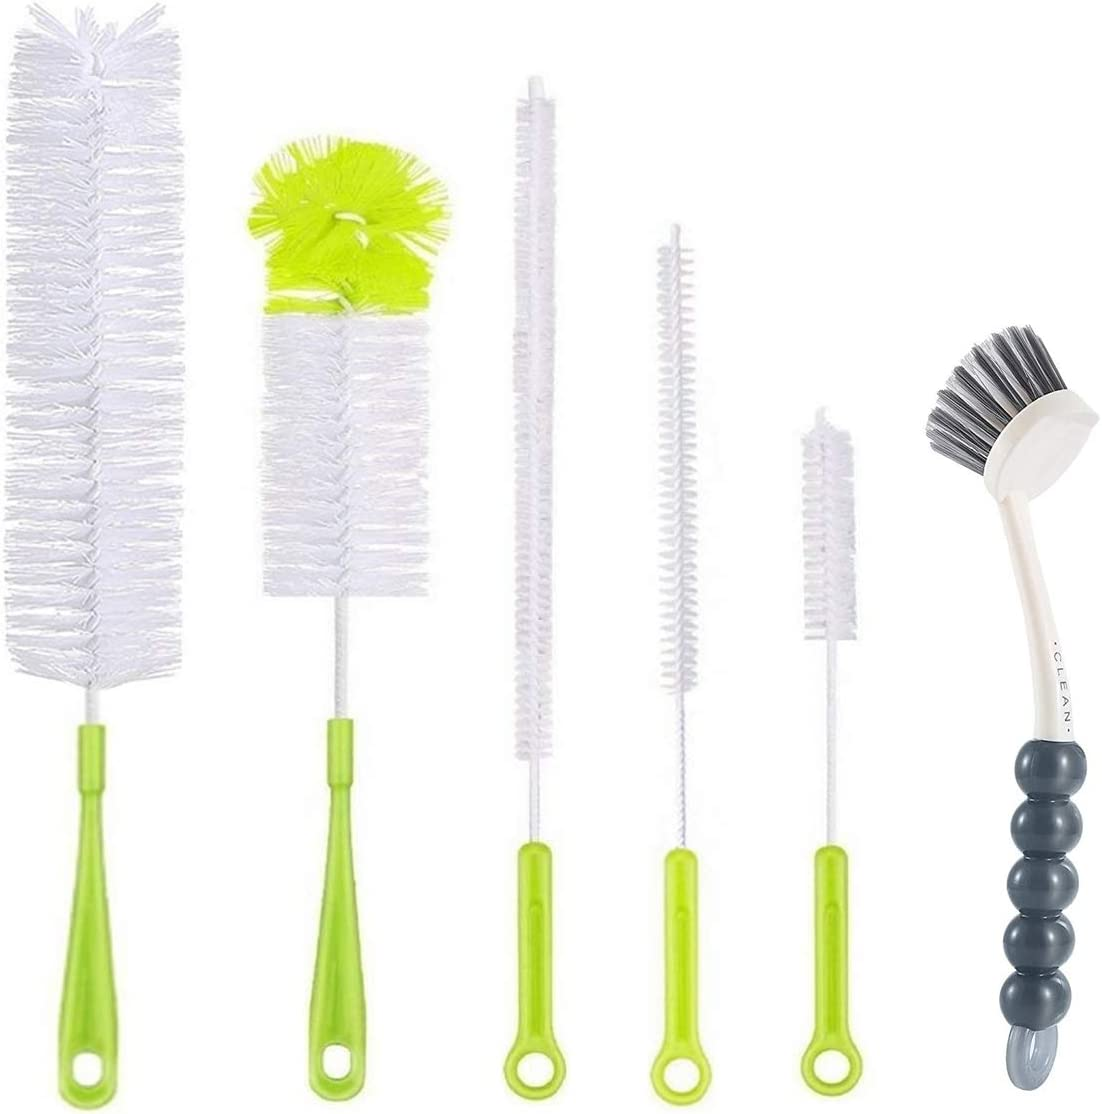 6Pcs Bottle Cleaning Brush Set-Long Handle Water Bottle Cleaner Brush for Washing Wine Decanter,Beer bottle,Baby Bottles,Include Sports Water Bottles|Straw Cleaner Brush|Kettle Spout|Lid Brush|Thermos